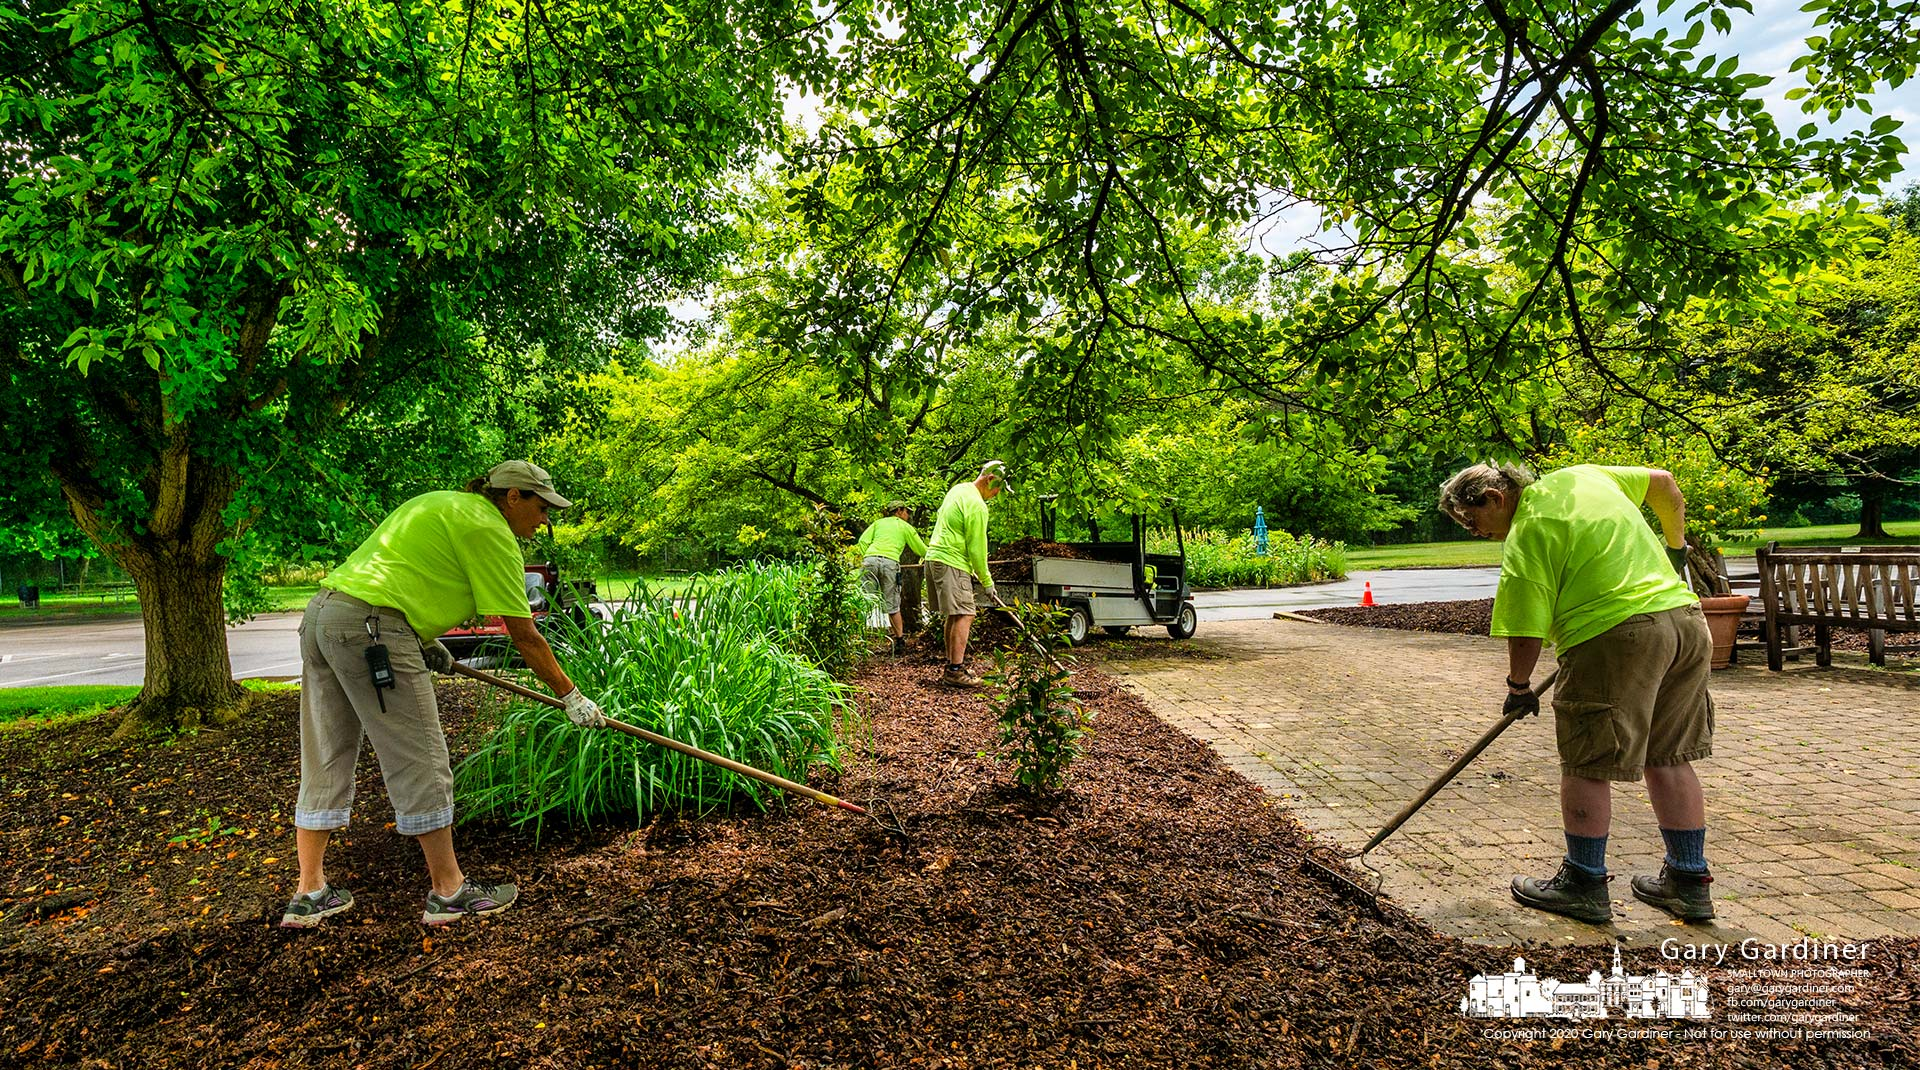 An Inniswood Metro Gardens grounds crew spreads mulch around the trees at the center of the parking lot. My Final Photo for June 18, 2021.